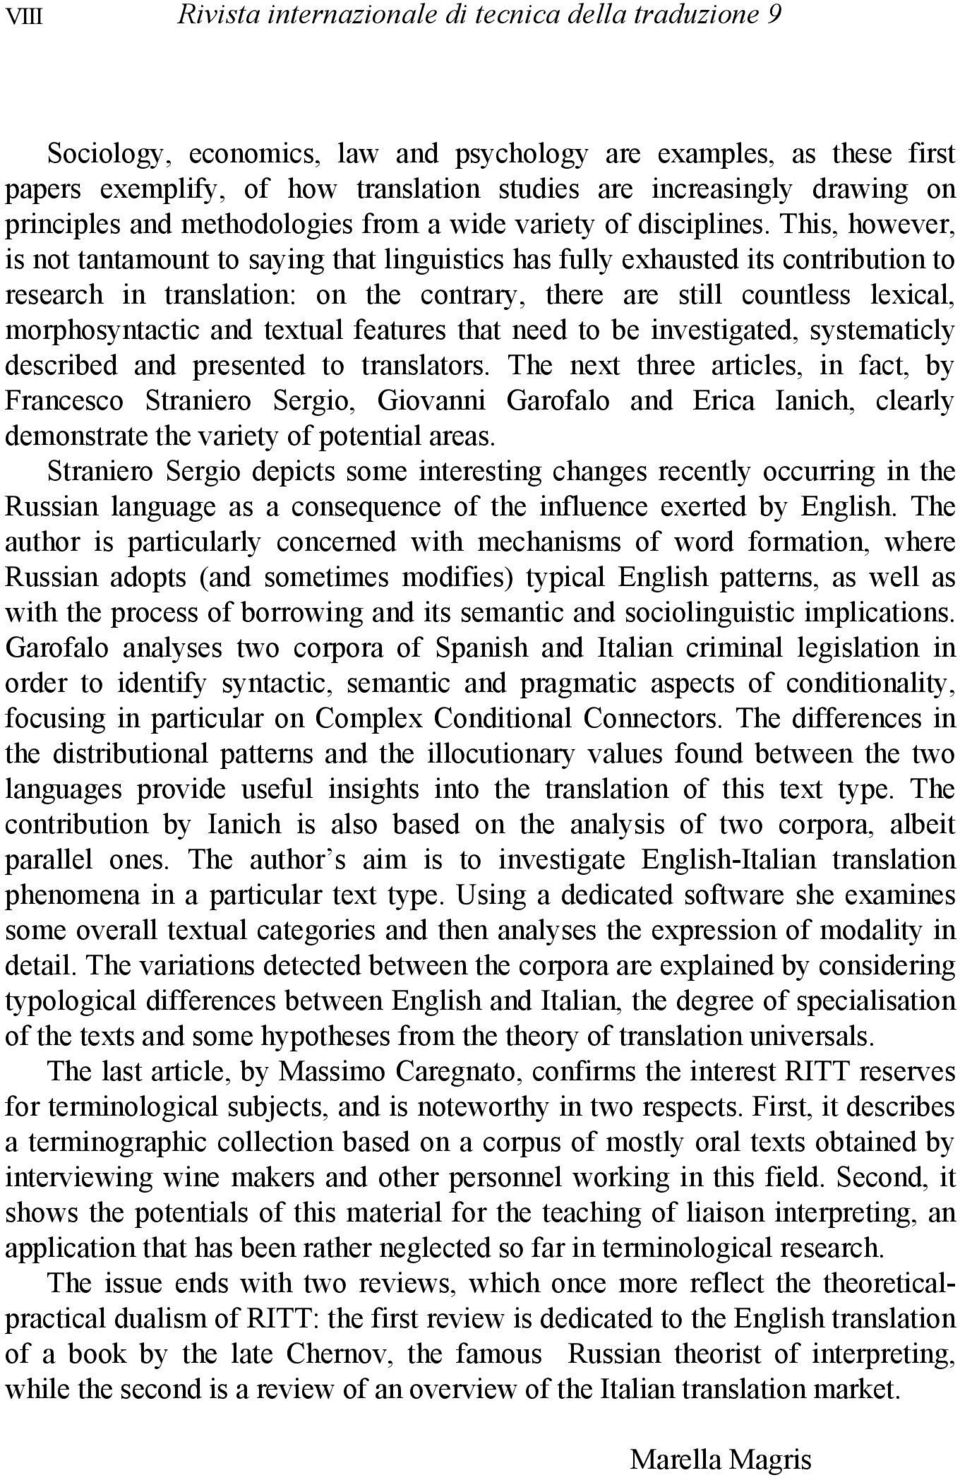 This, however, is not tantamount to saying that linguistics has fully exhausted its contribution to research in translation: on the contrary, there are still countless lexical, morphosyntactic and